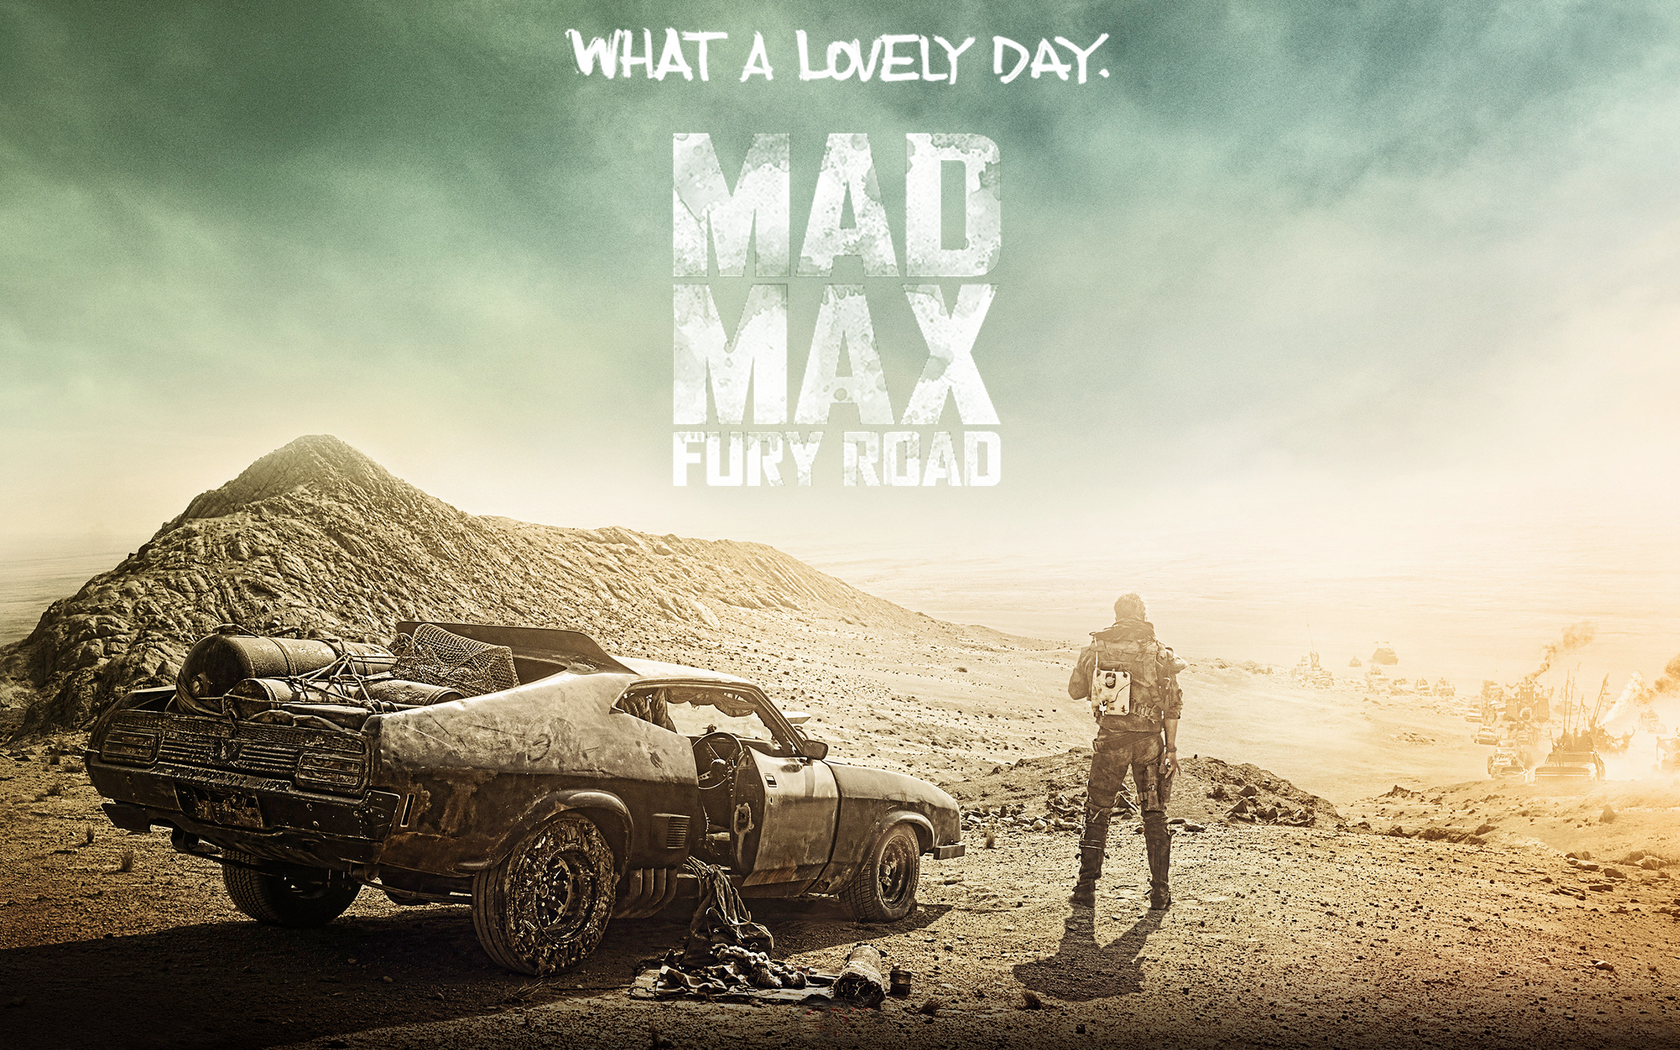 Mad max game clipart image royalty free download Mad max fury road clipart 1920x1080 - ClipartFest image royalty free download